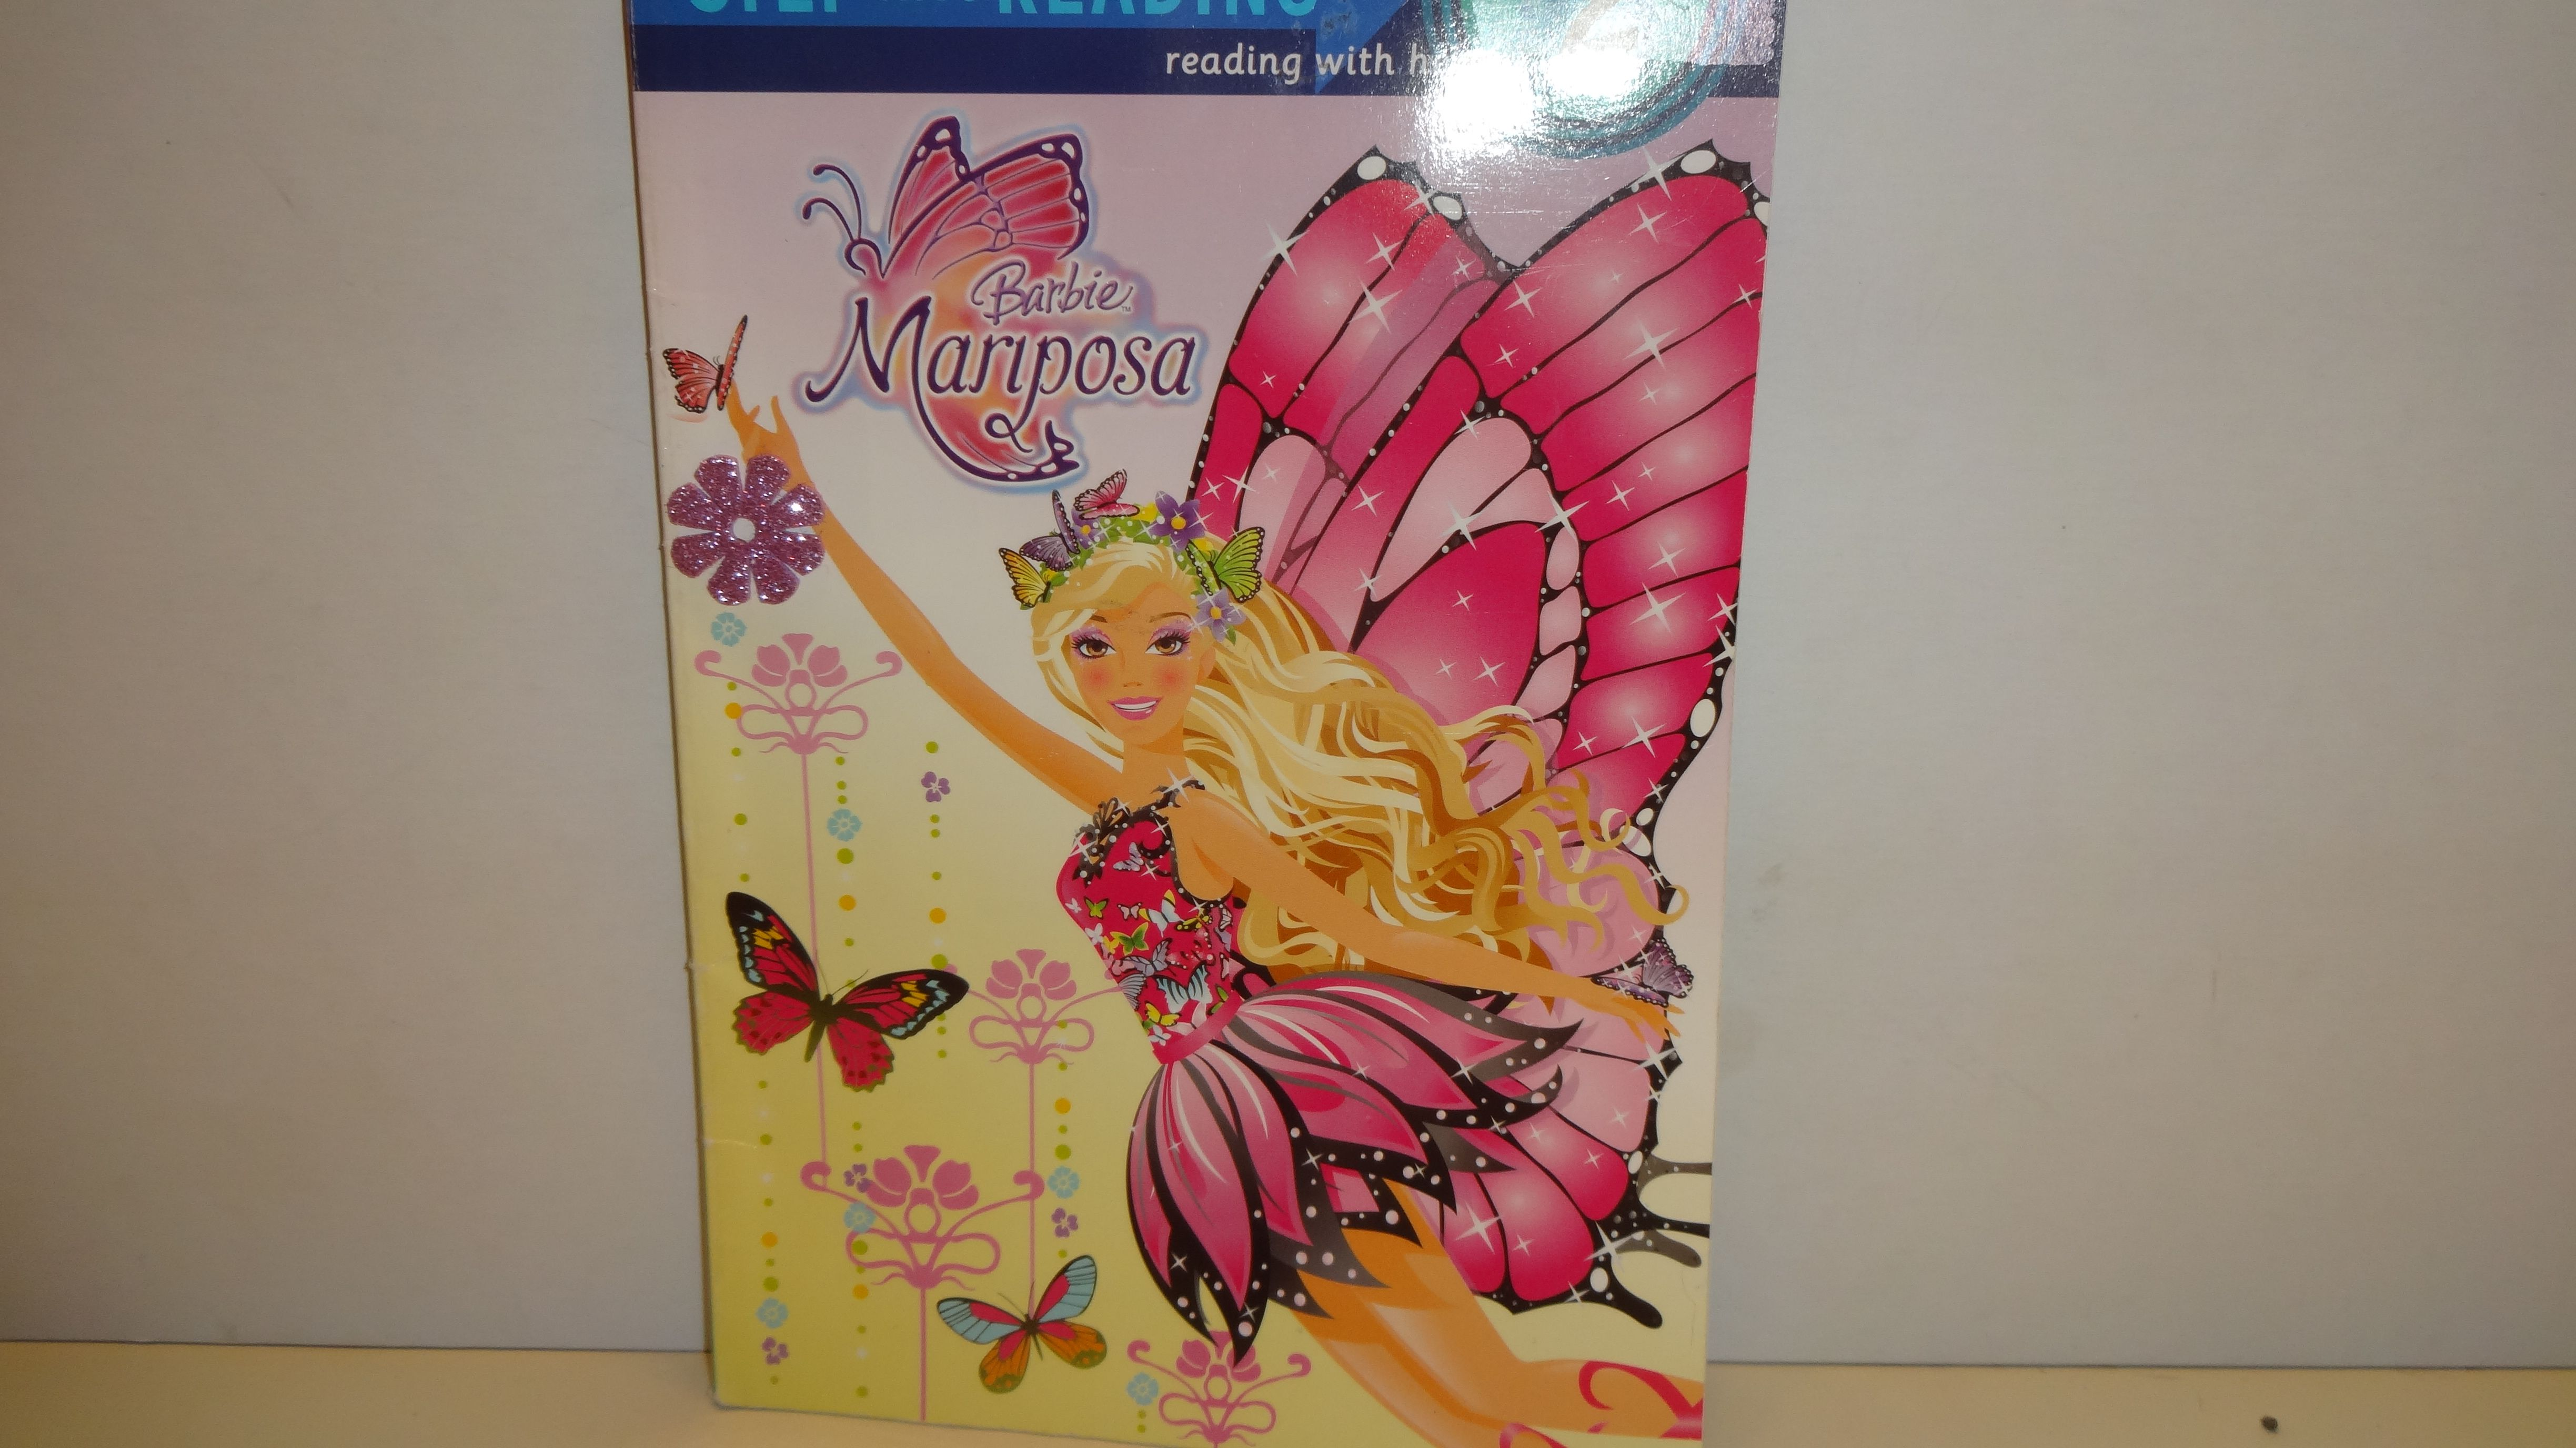 FOR USE IN SCHOOLS AND LIBRARIES ONLY. When the Queen of Flutterfield is poisoned, Mariposa, a butterfly fairy, and her two friends set out beyond the forest to the Cave of Reflection to find the antidote that will save the Queen. www.amazon.com/shops/tammywood